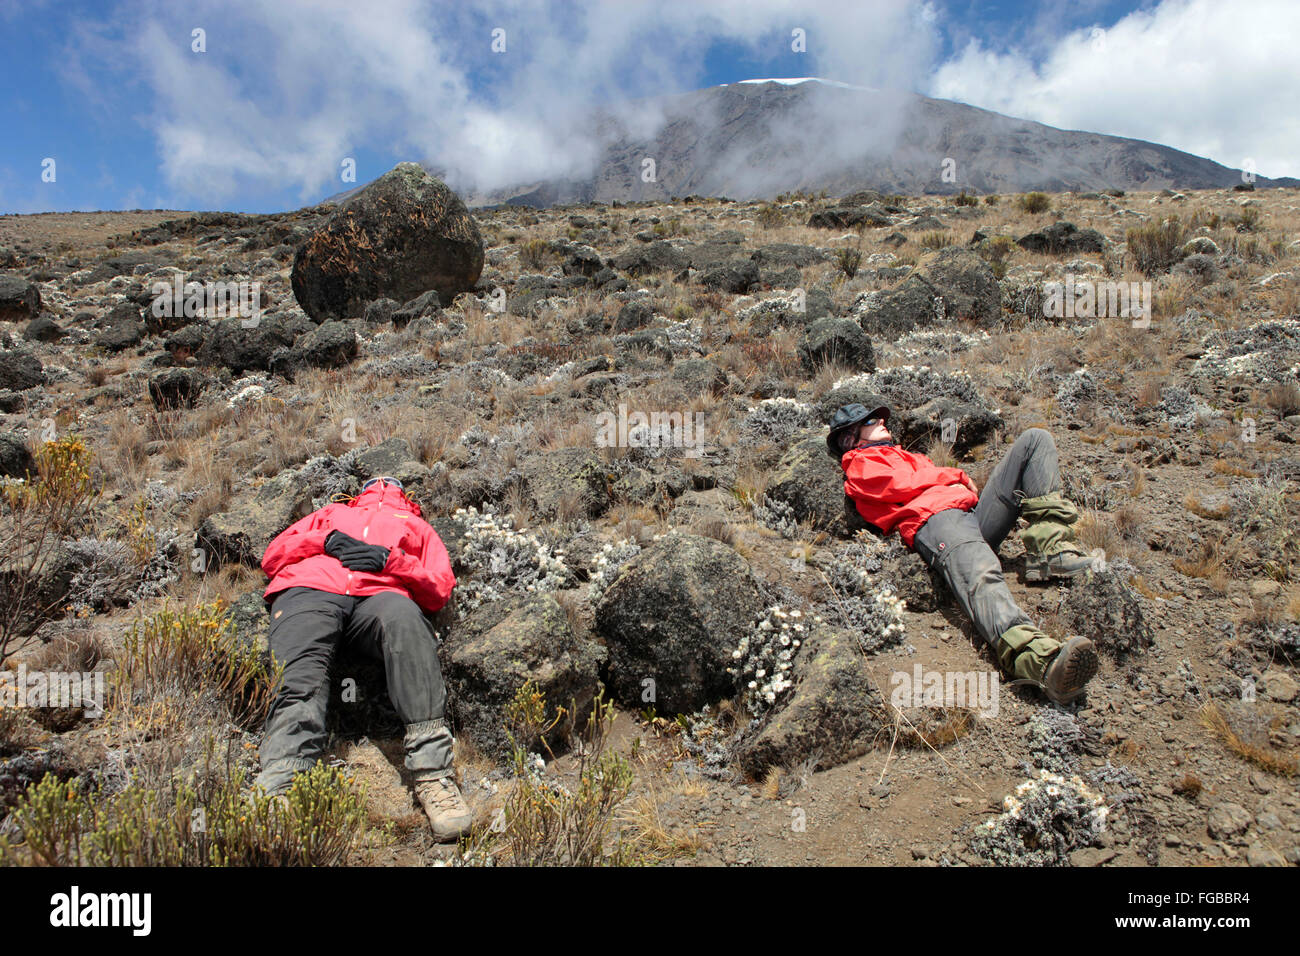 Two hikers are laying exhausted of altitude sickness on the slopes of Mount Kilimanjaro. - Stock Image